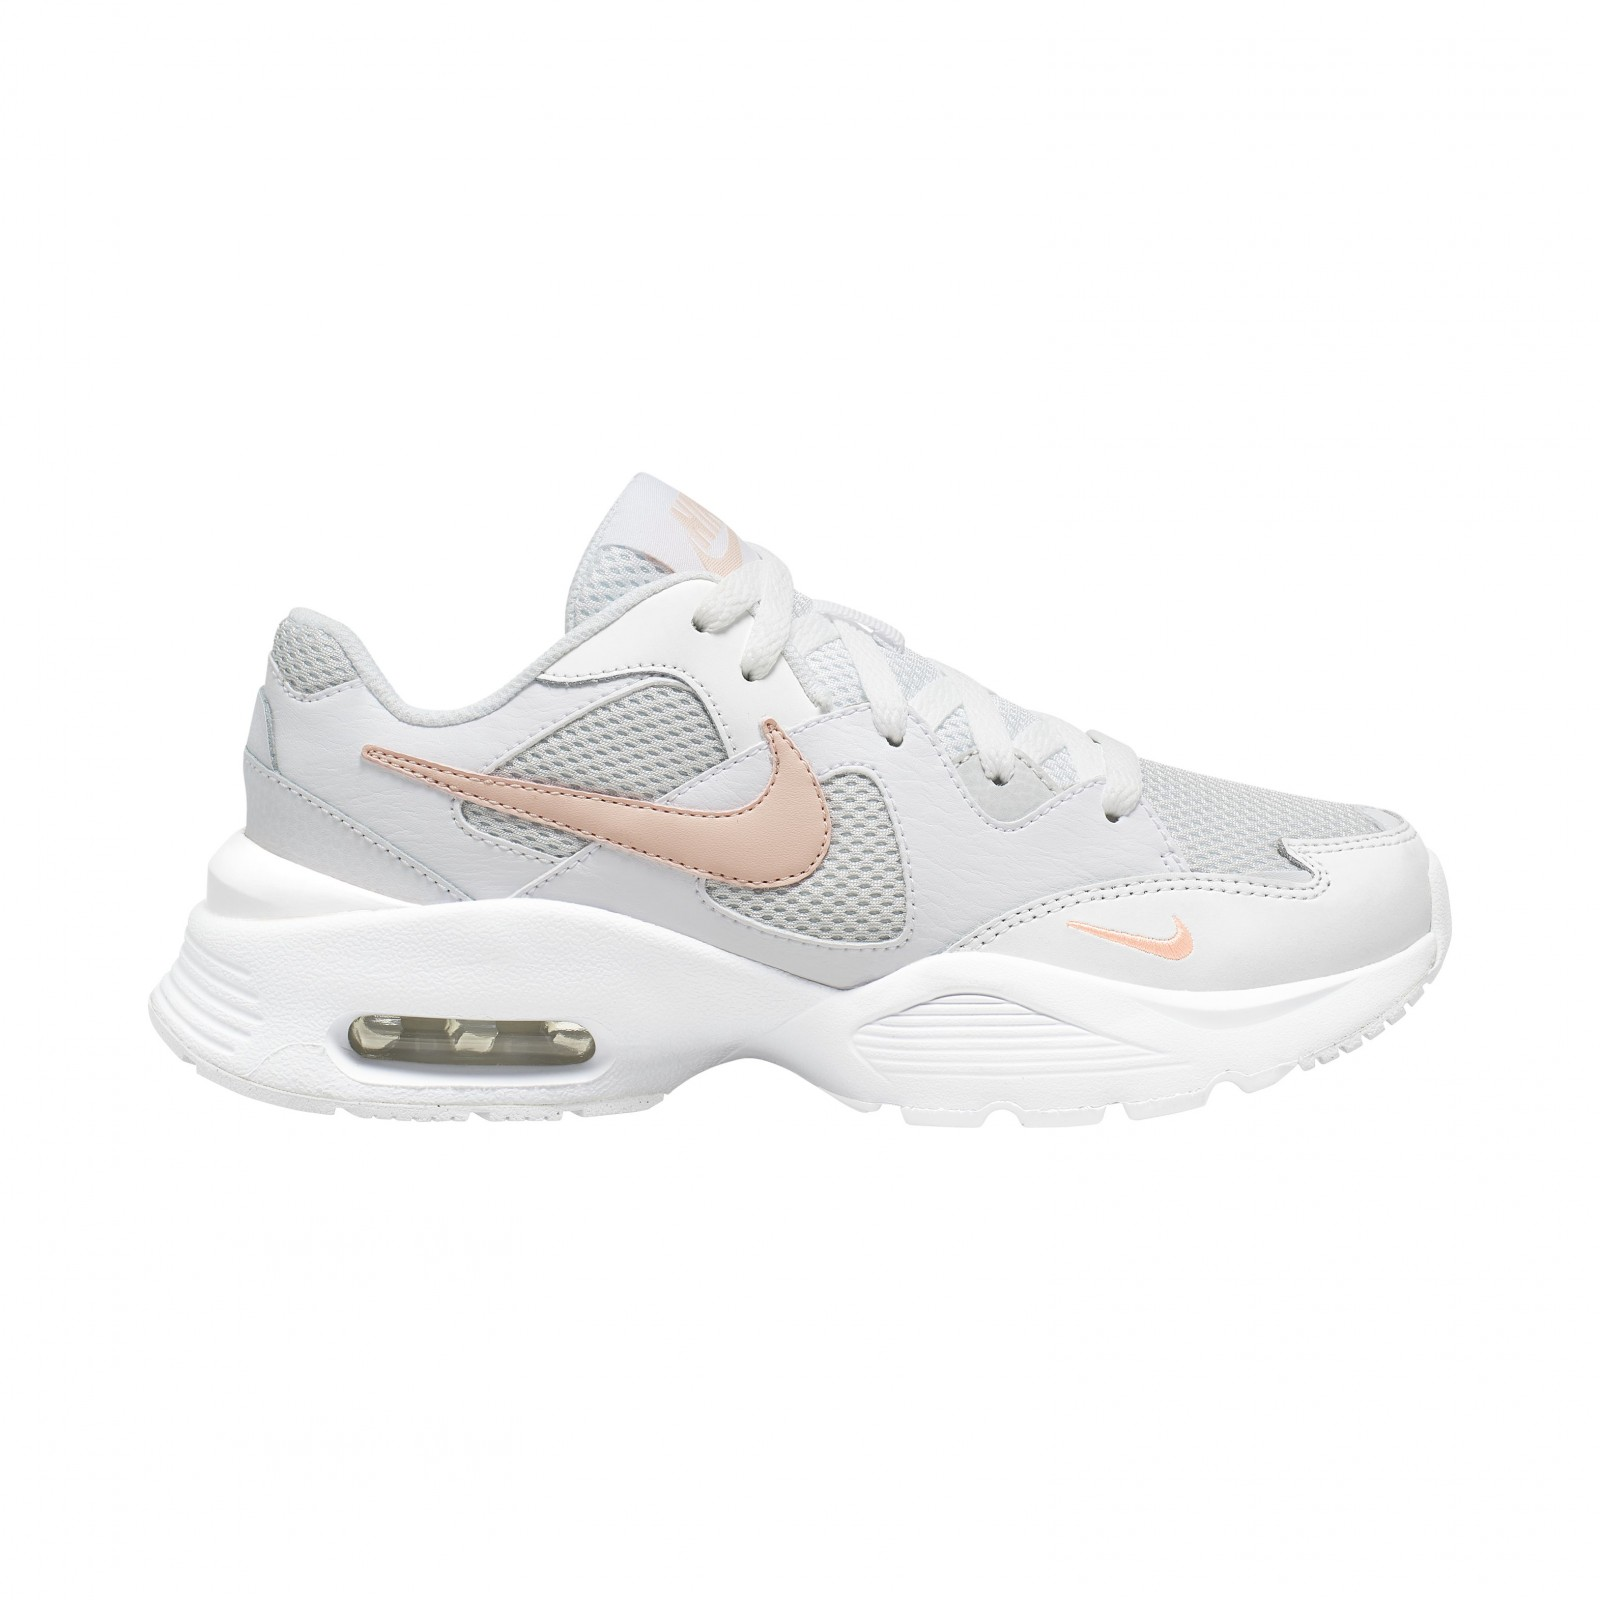 Wmns nike air max fusion WHITE/WASHED CORAL-PHOTON DUST